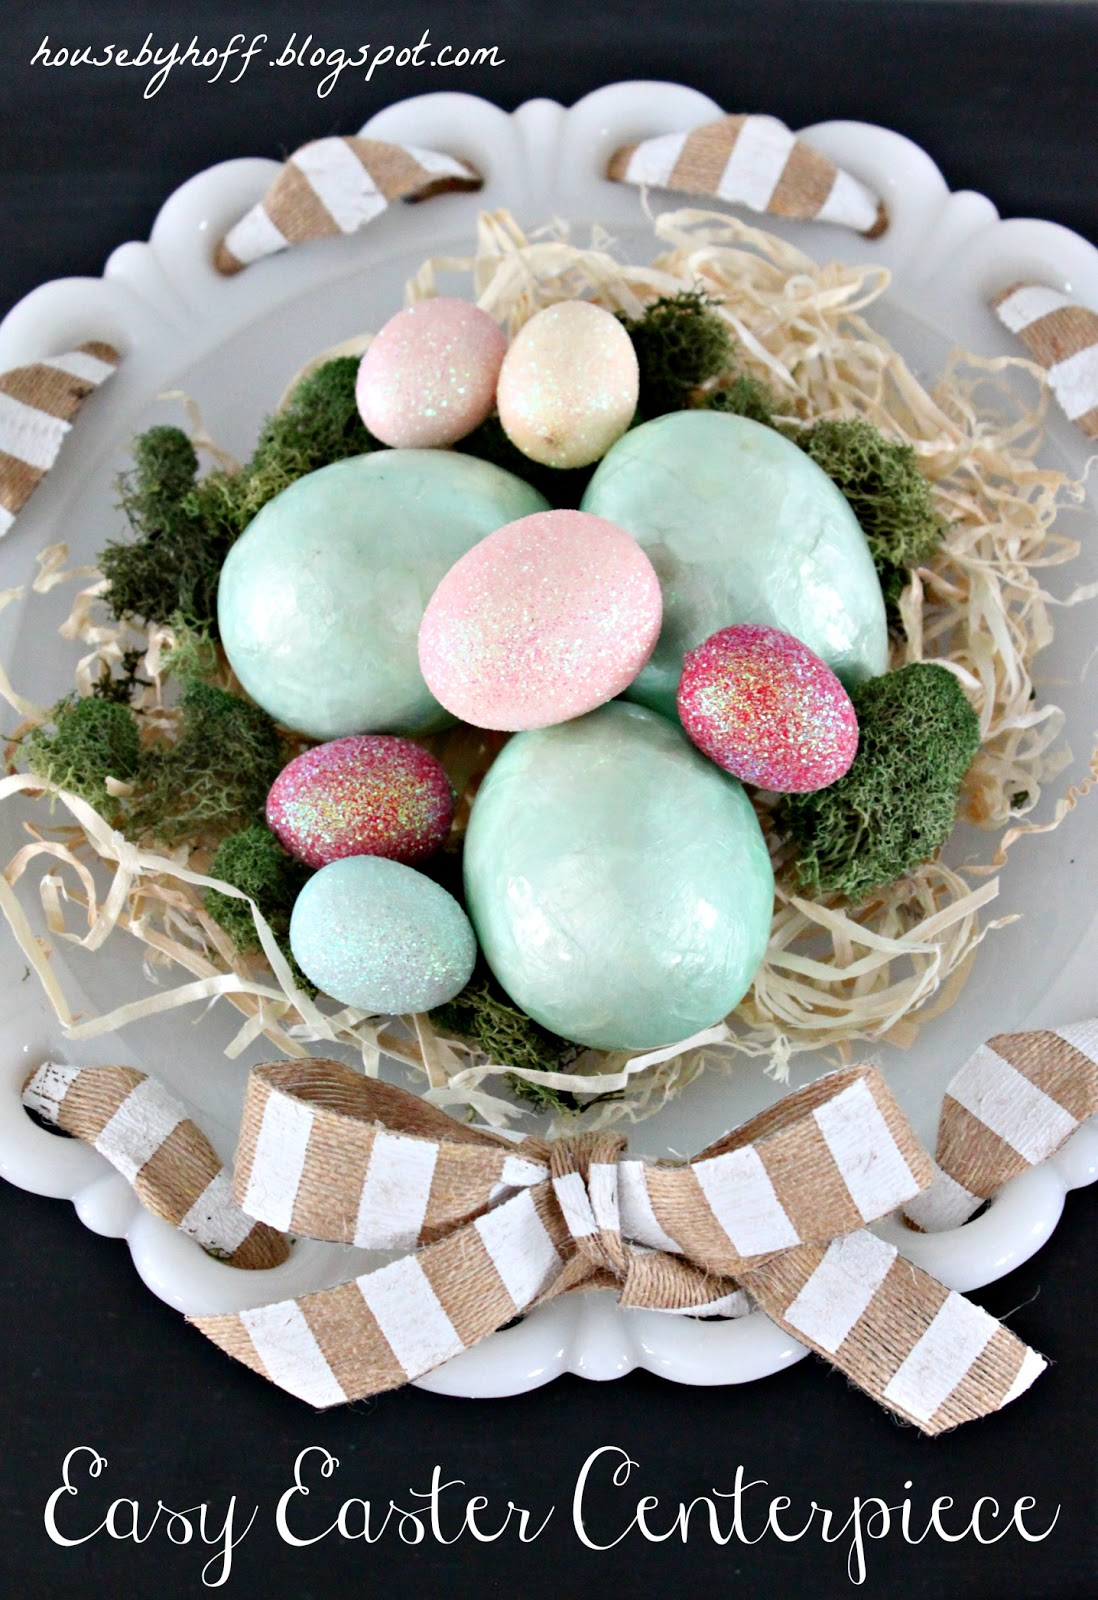 An Easy Easter Centerpiece House By Hoff